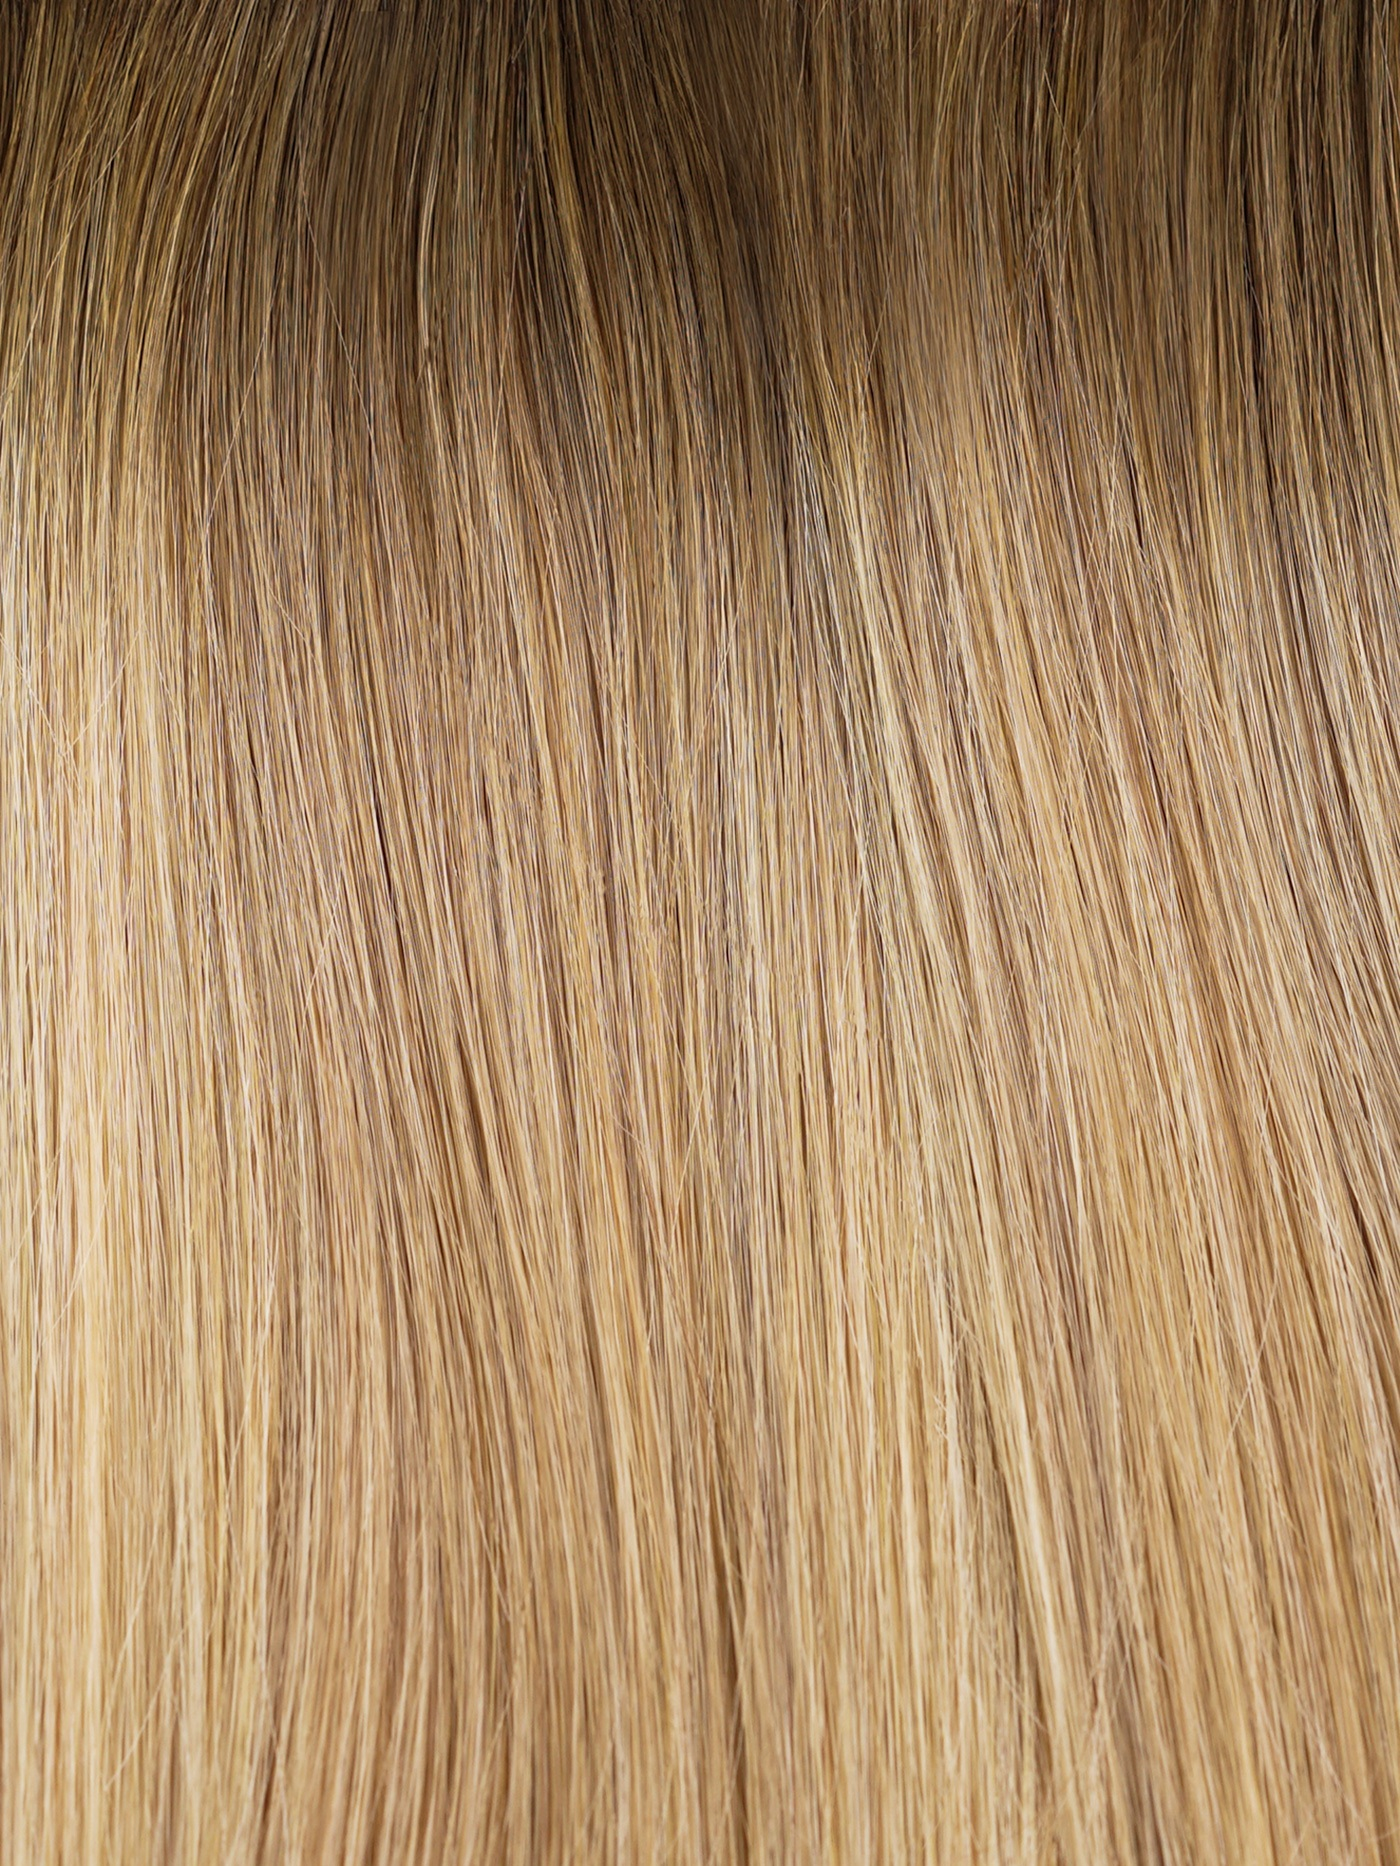 ROOTED ASH BLONDE #R4a-18/22 OR ASH BLONDE #18/22 - Our most popular blonde shade is a beautiful combination of cool toned and platinum blonde. This specific mix starts with a 2